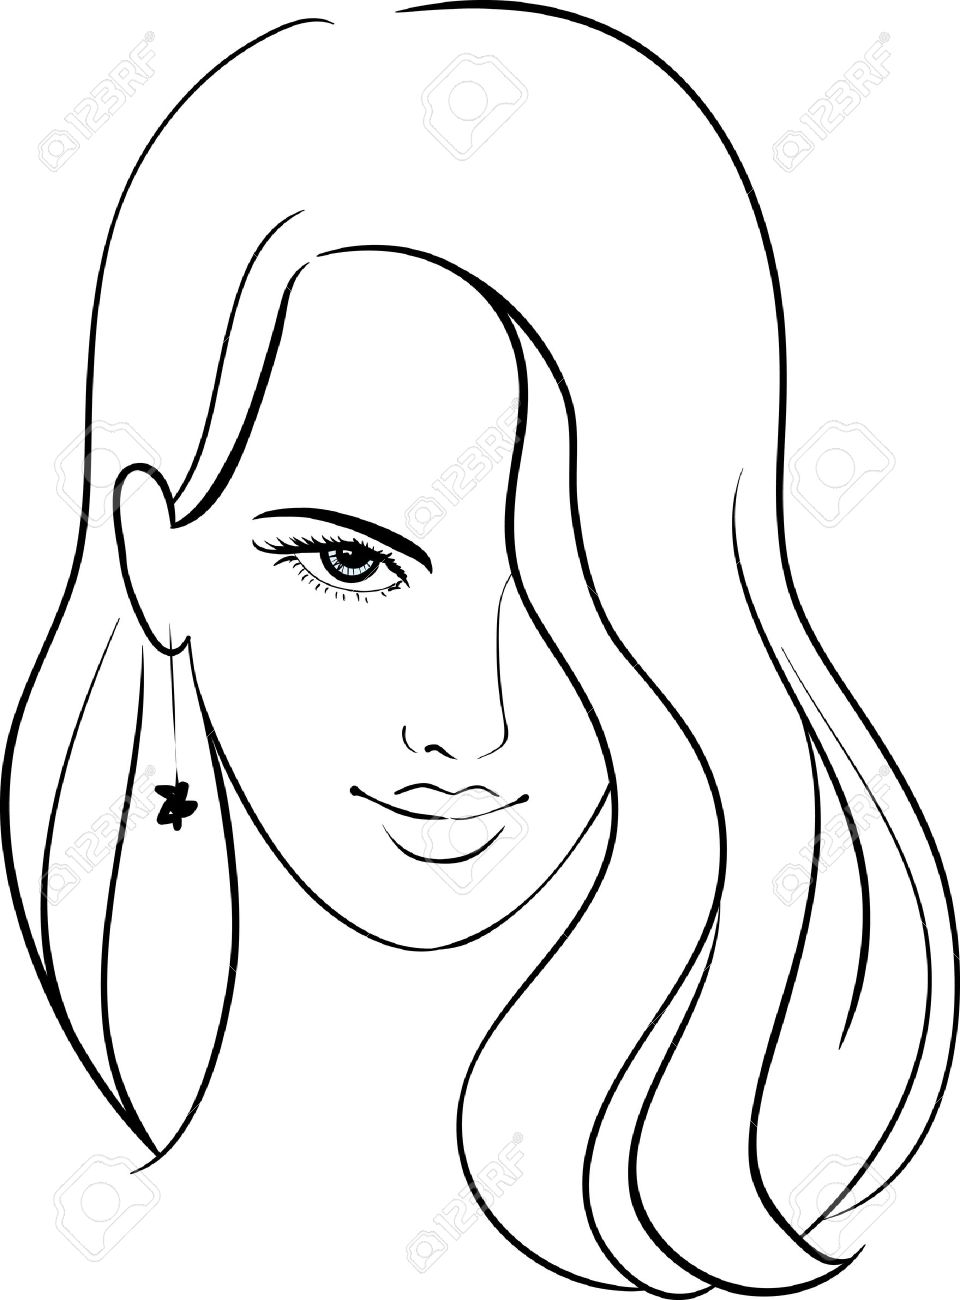 Girl Face with Beautiful Hair, Vector Sketch Stock Vector - 15432901